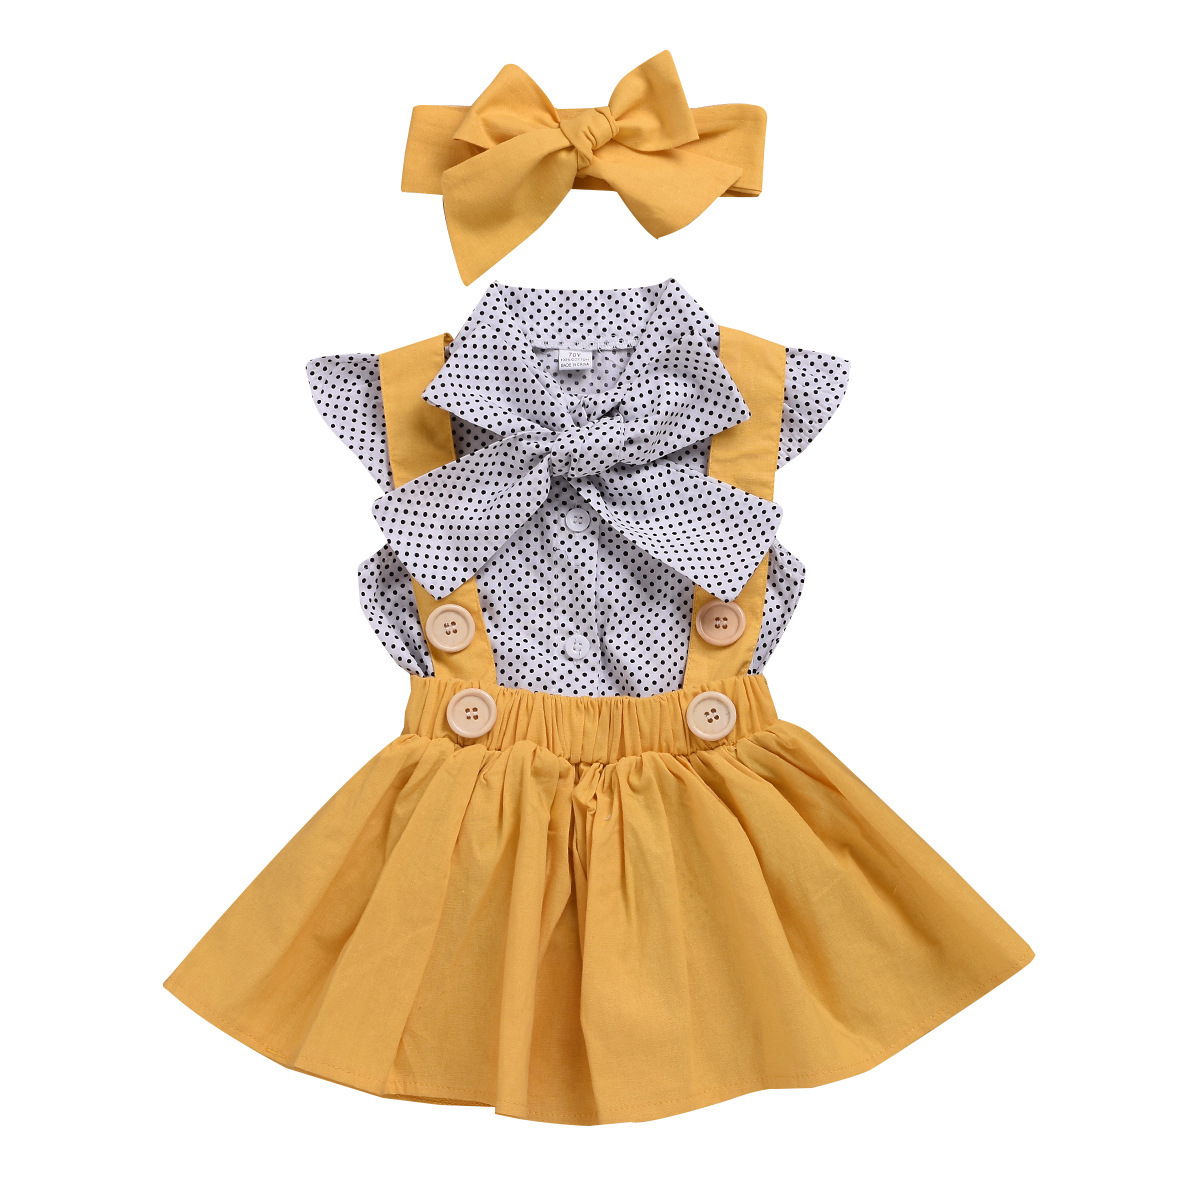 Baby Girl Bowknot Suspender Skirt Infant Toddler Dot Long Sleeve Outfit Clothe